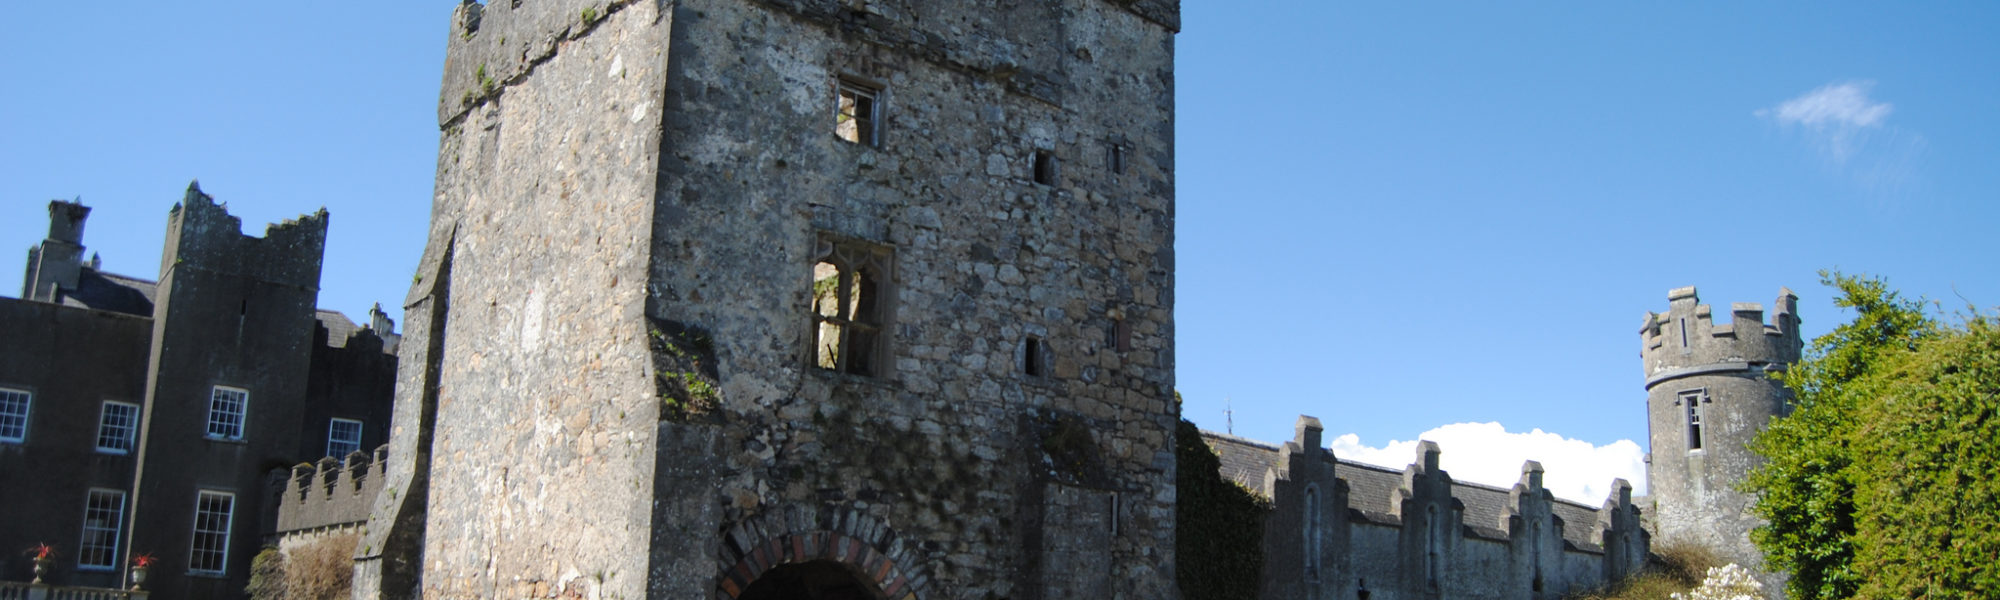 Howth Castle - Ana _Rey - cc